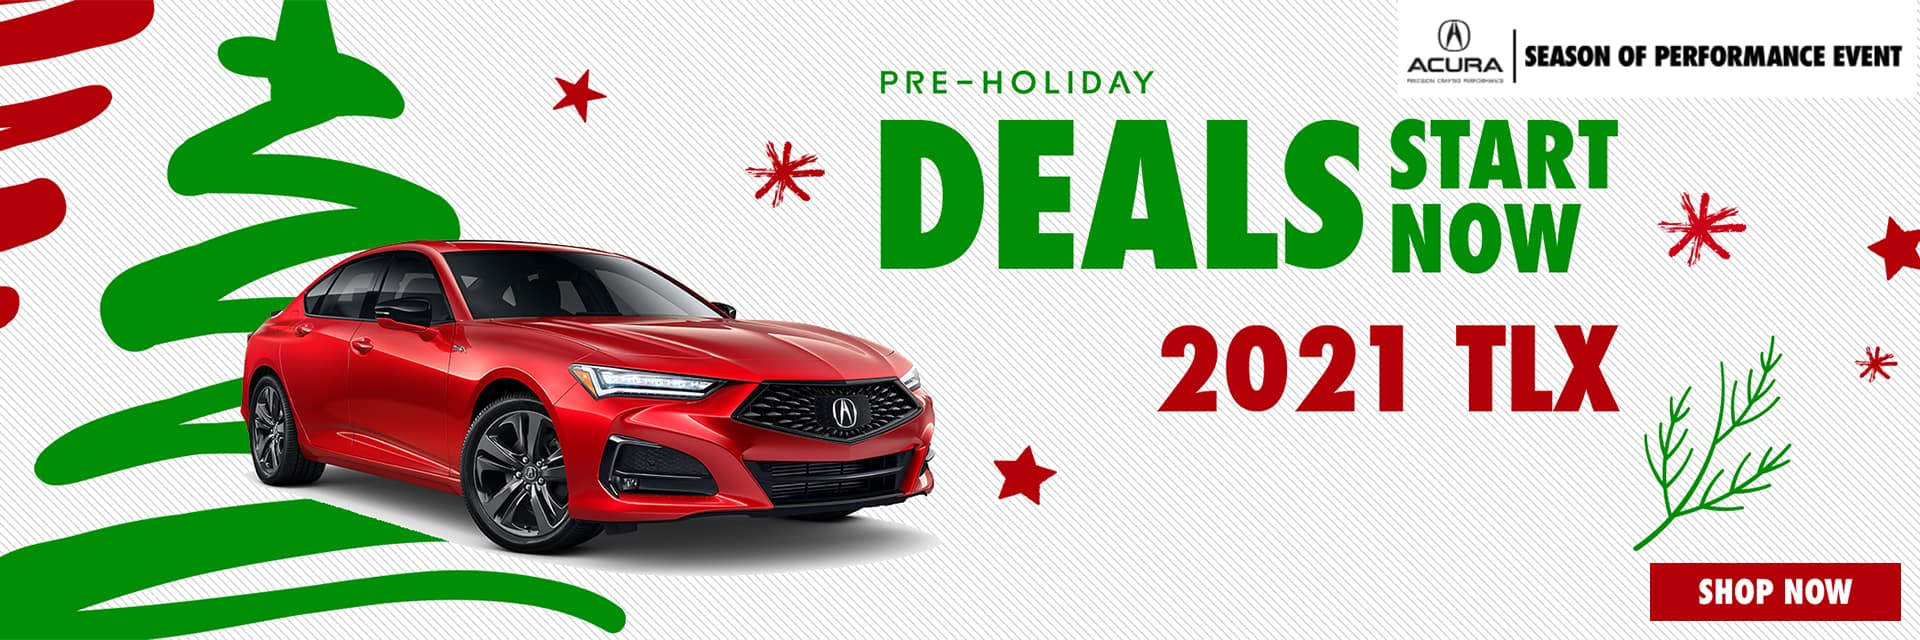 1920x640_CA_20058_Acura_Pre-Holiday Non-Offer_CTROT_DAA TLX